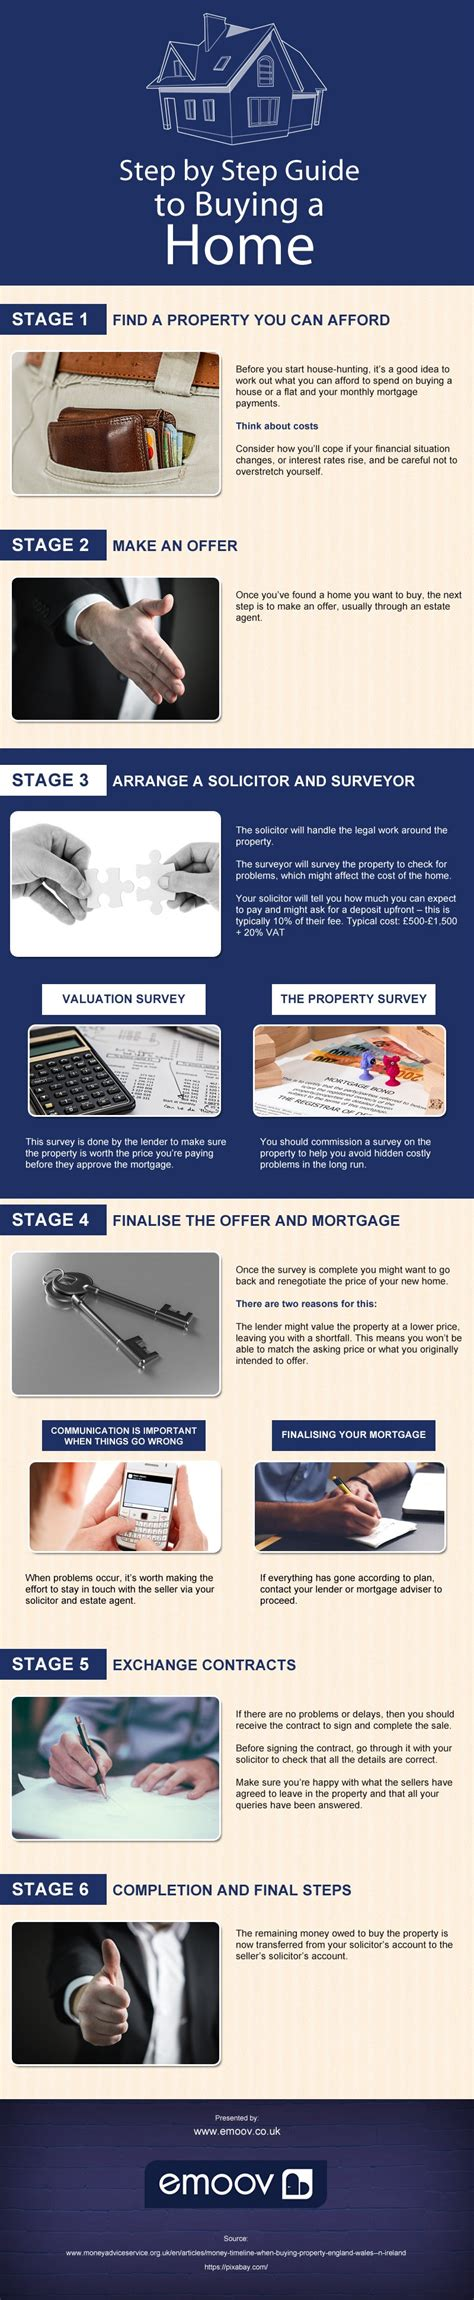 steps to follow when buying a house step by step guide to buying a home infographic post